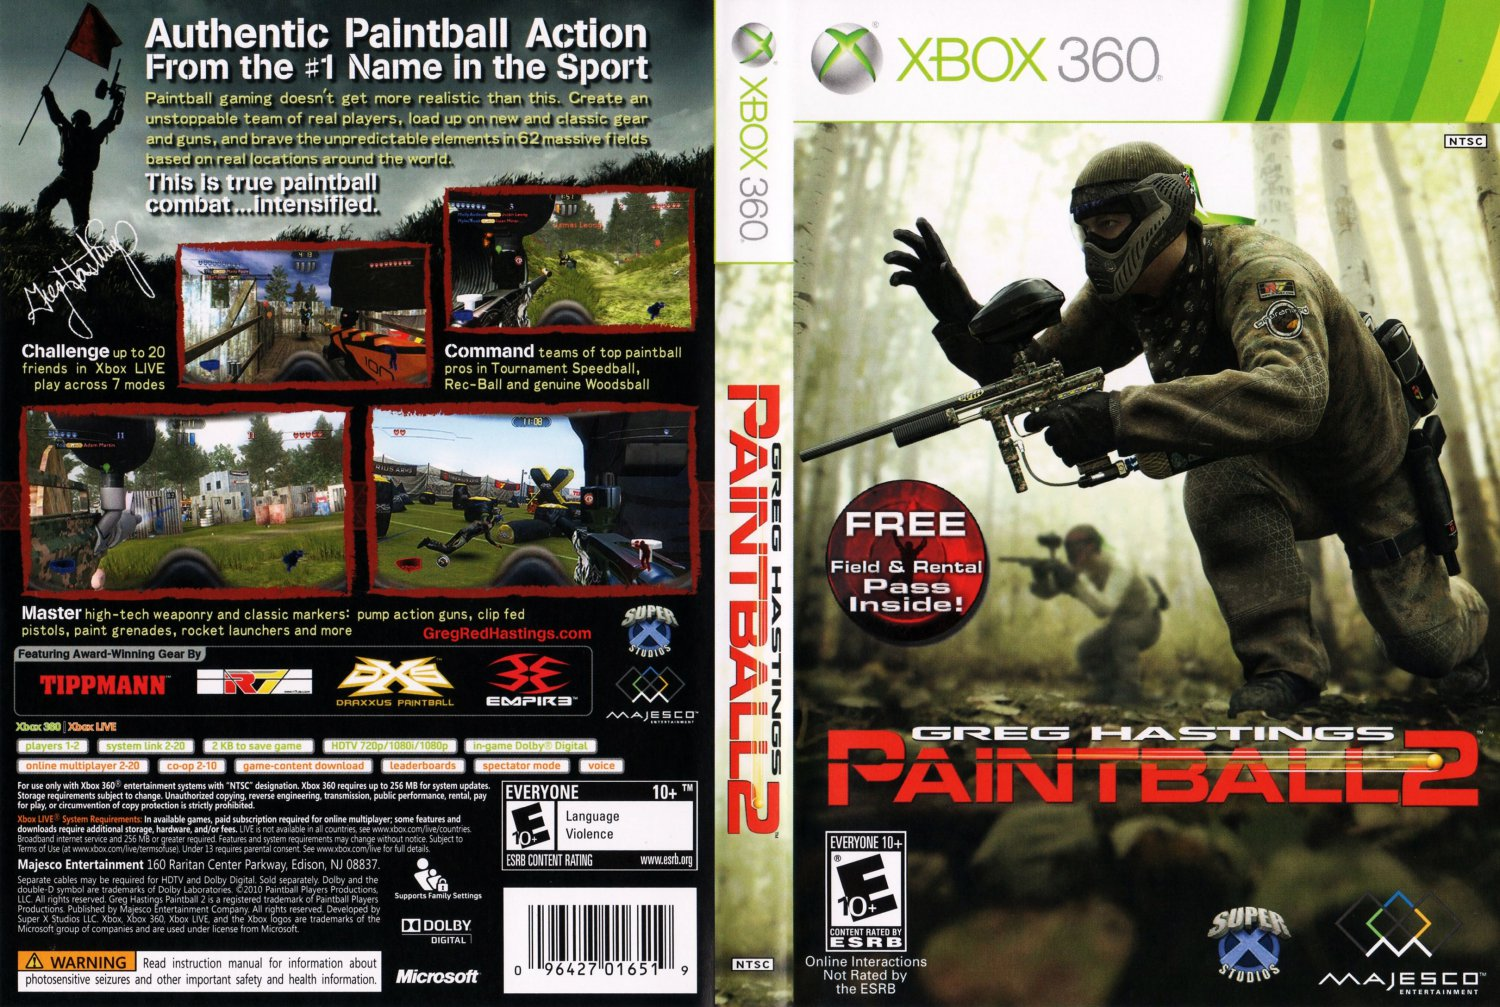 Paintball Games For Xbox 1 : Greg hastings paintball xbox game covers